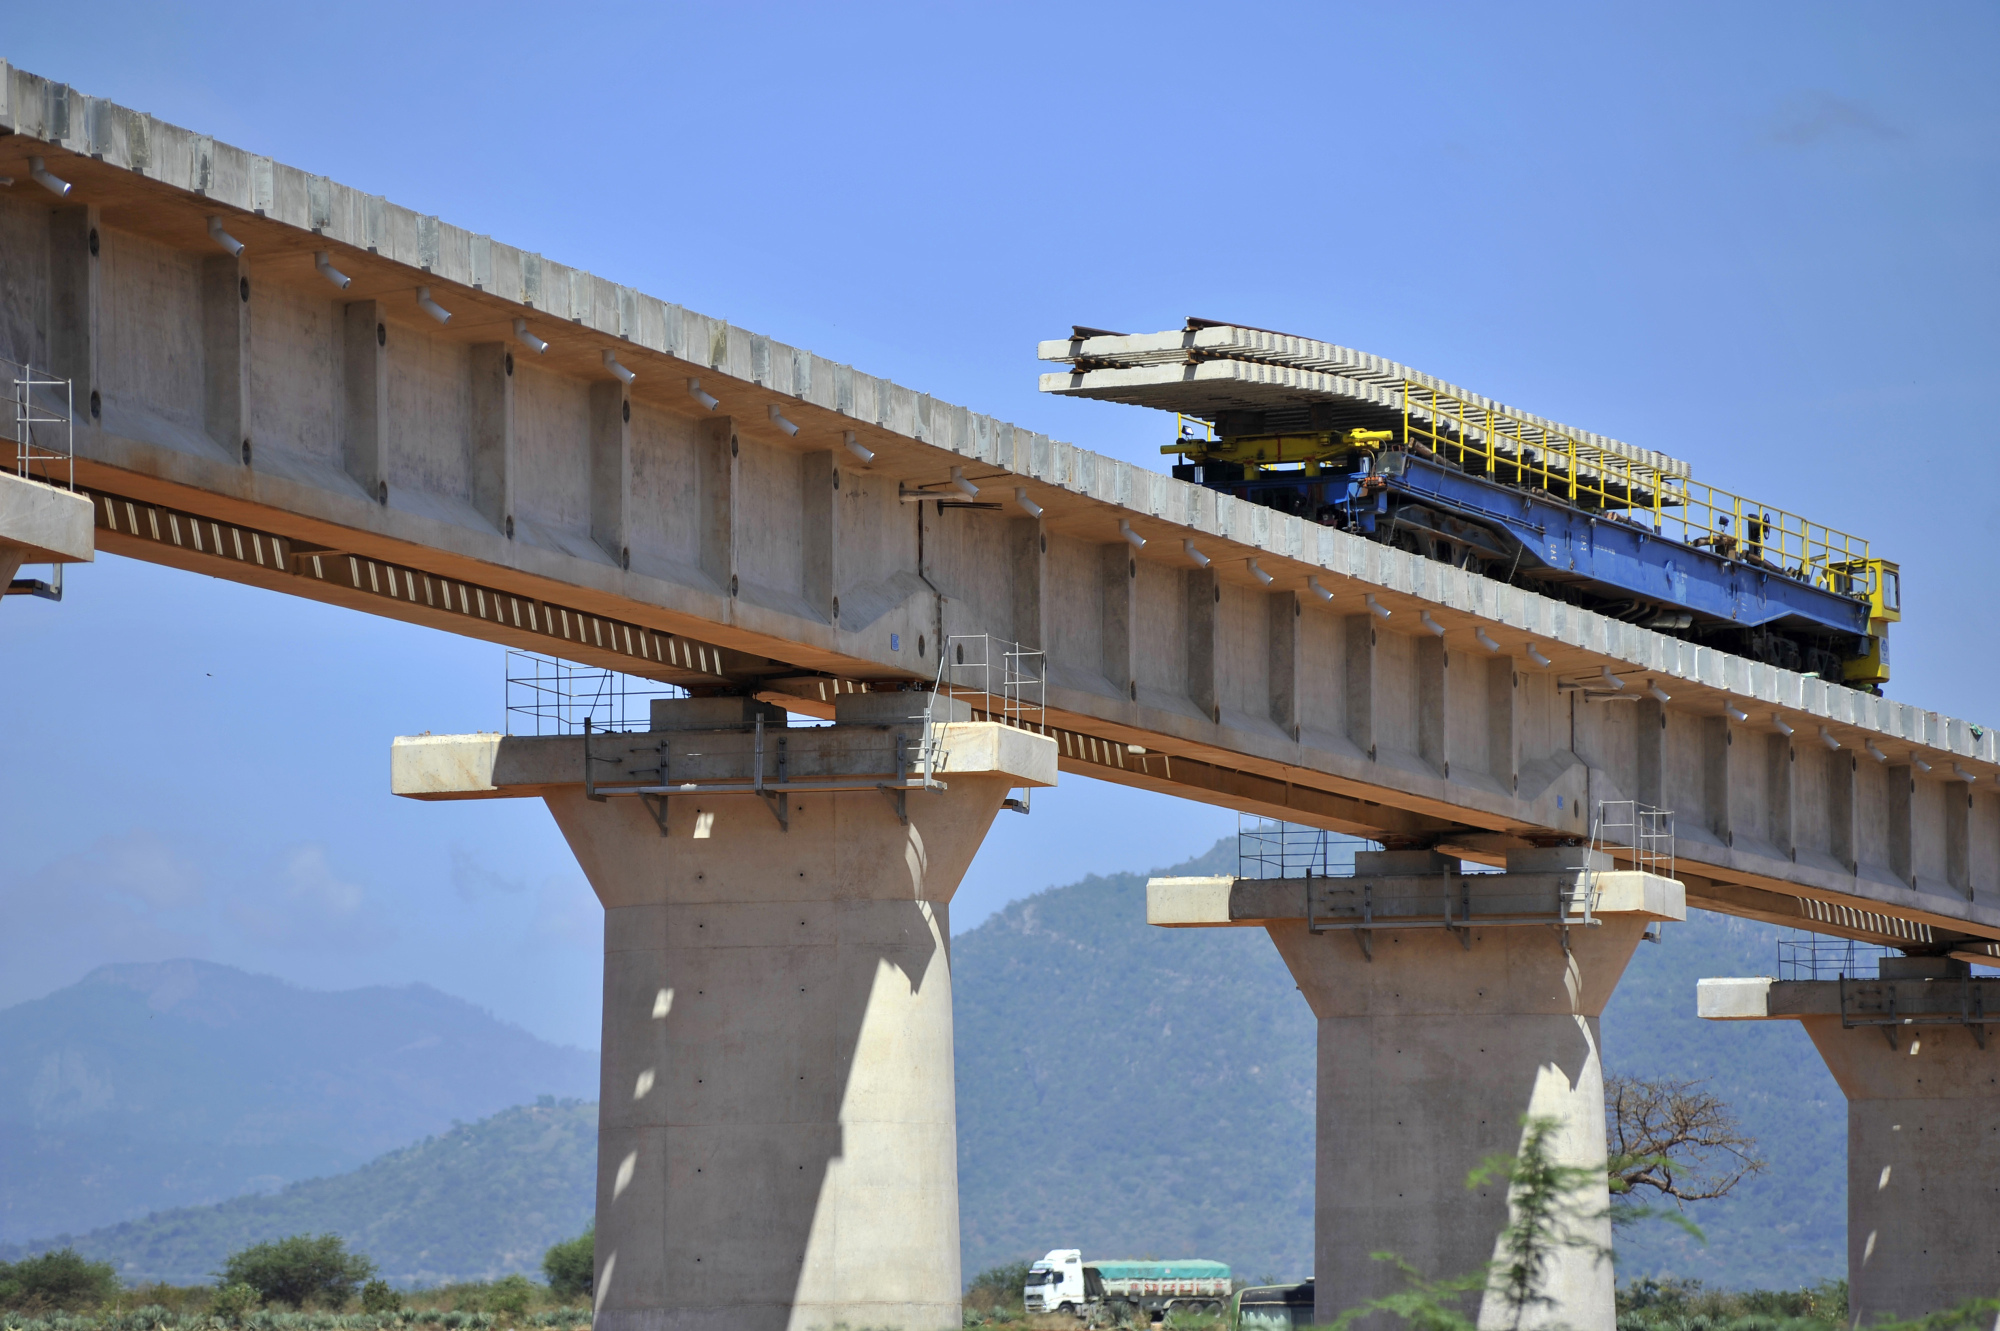 A rail wagon carries sections of railway sleepers and tracks towards the bridge end during the construction of a superbridge which will form part of the new Mombasa-Nairobi Standard Gauge Railway (SGR) line, in Voi, Kenya, on Wednesday, March 16, 2016.  By providing an alternative to roads, the 1,100-kilometer (684-mile) Chinese-financed railway will slash the time and cost of transporting people and goods between East Africa's landlocked nations. Photographer: Riccardo Gangale/Bloomberg